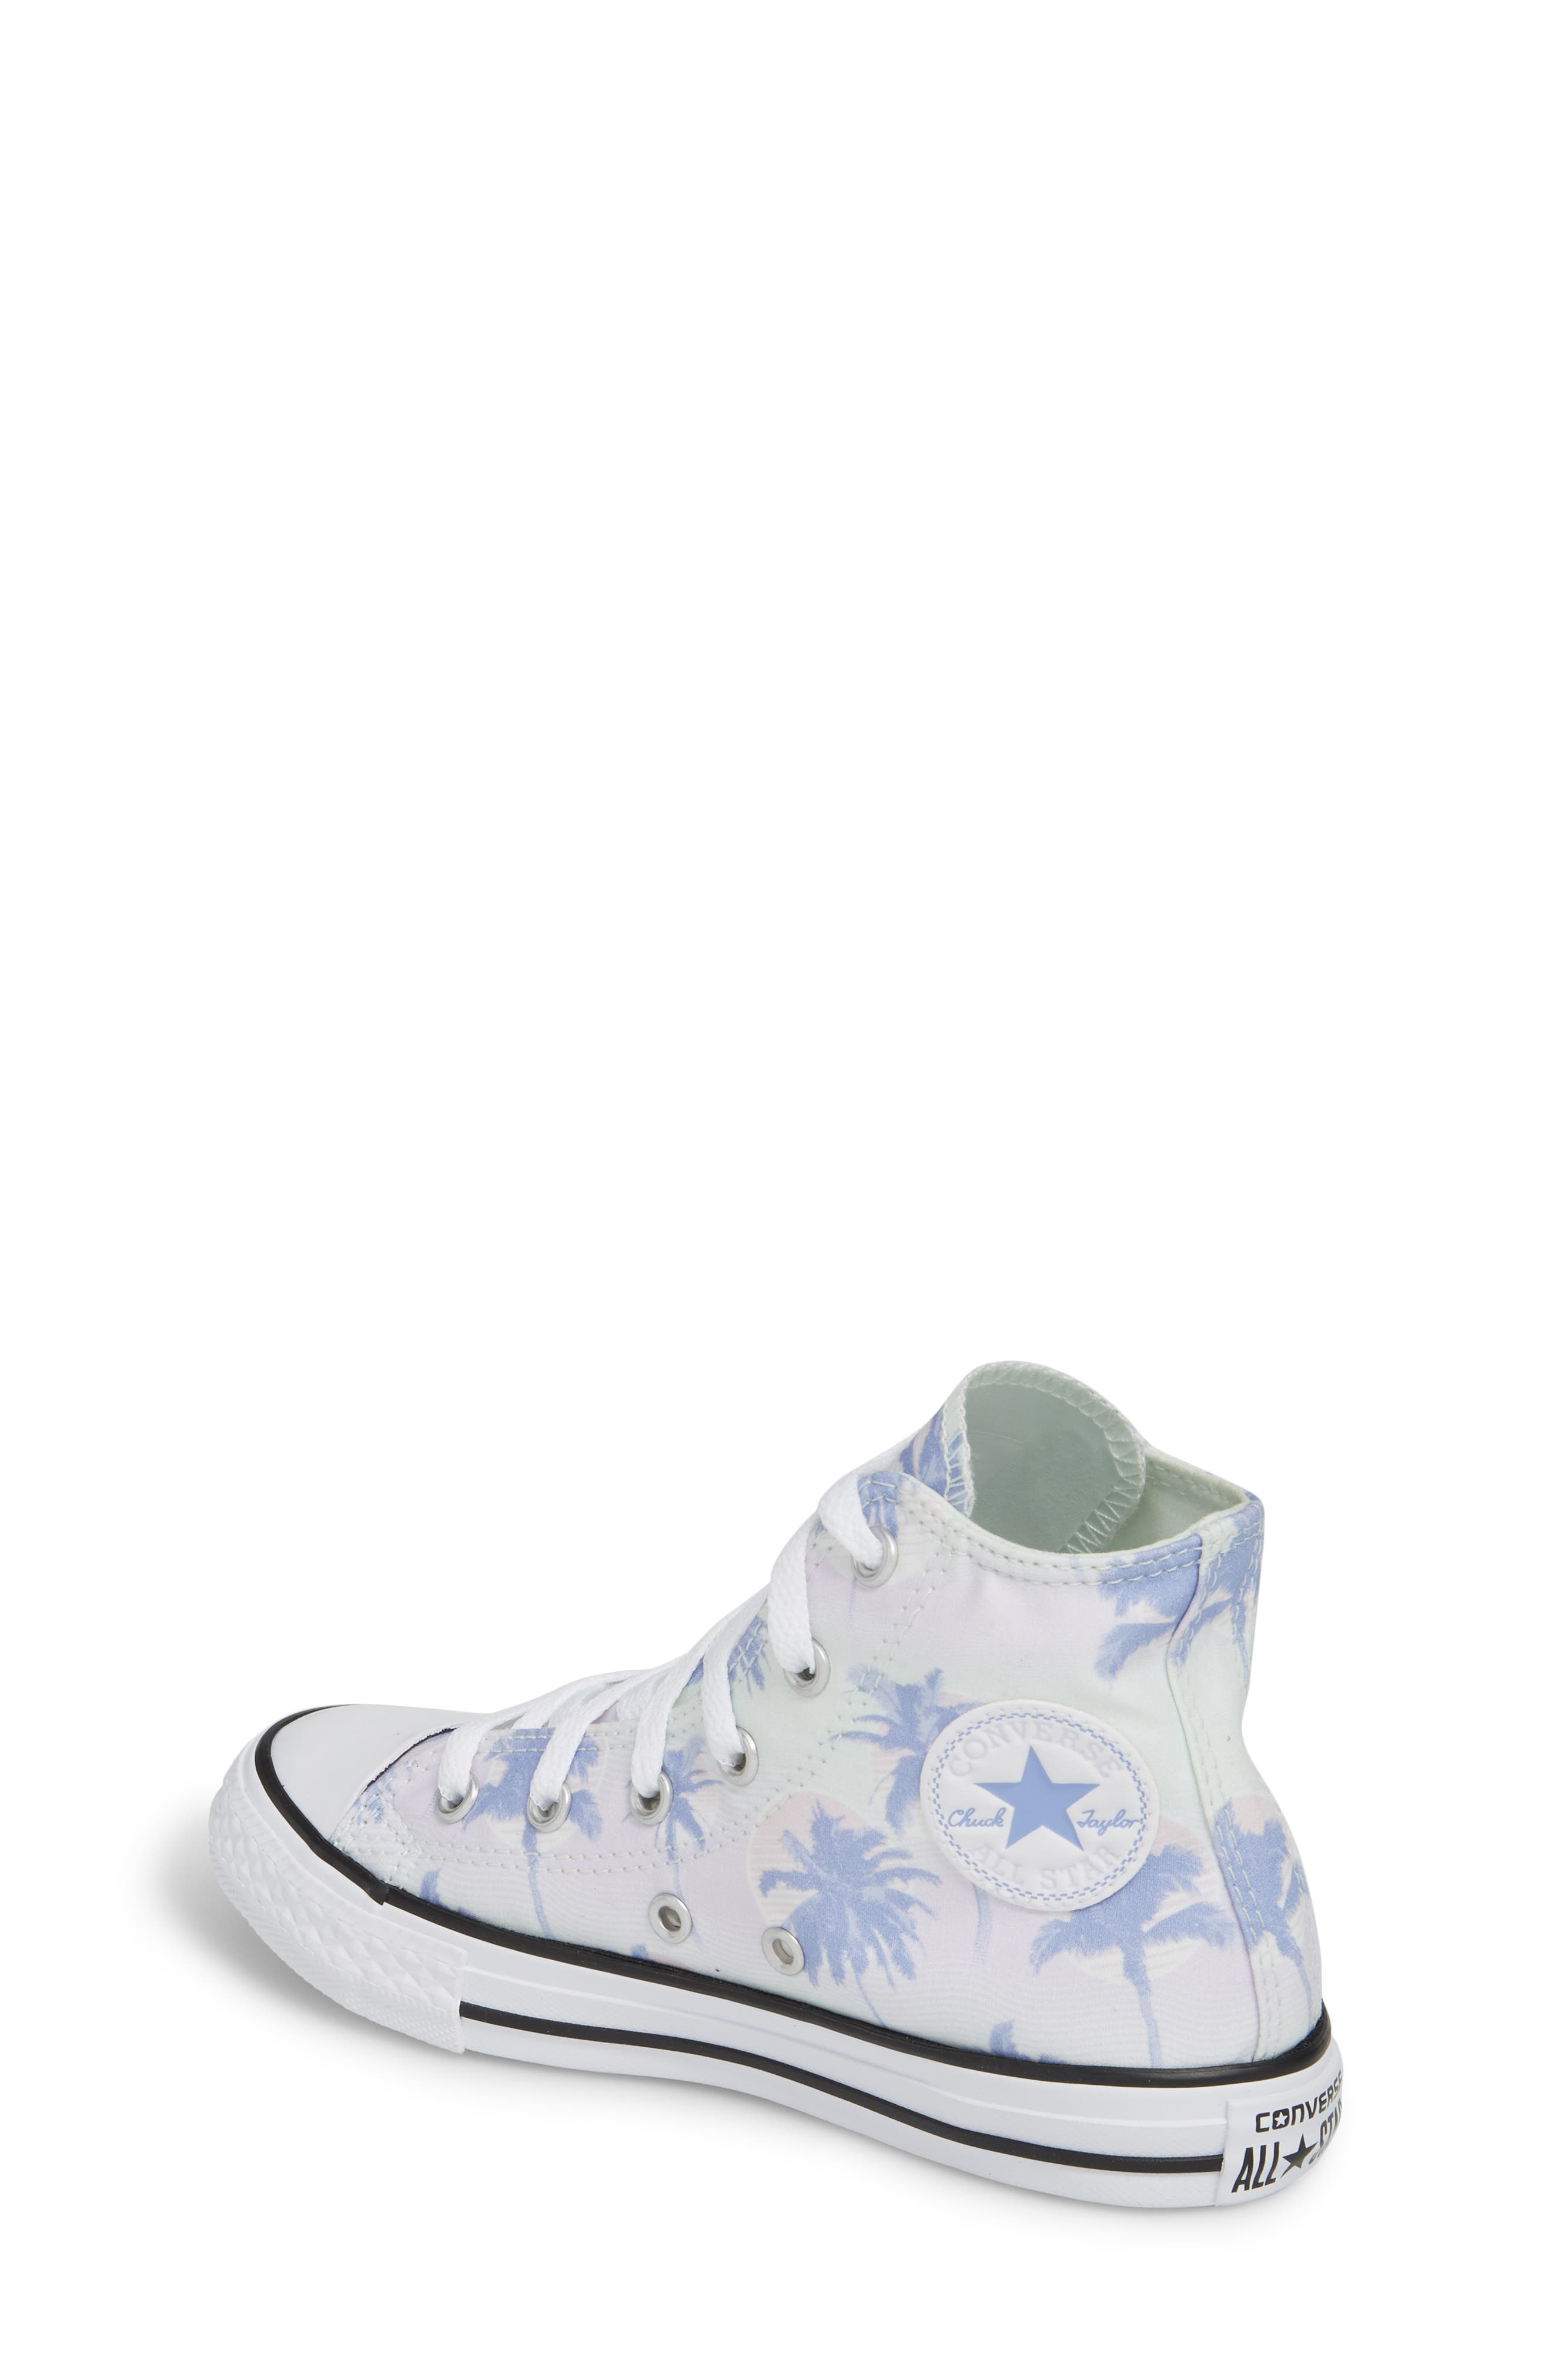 Chuck Taylor<sup>®</sup> All Star<sup>®</sup> Palm Tree High Top Sneaker,                             Alternate thumbnail 2, color,                             Purple